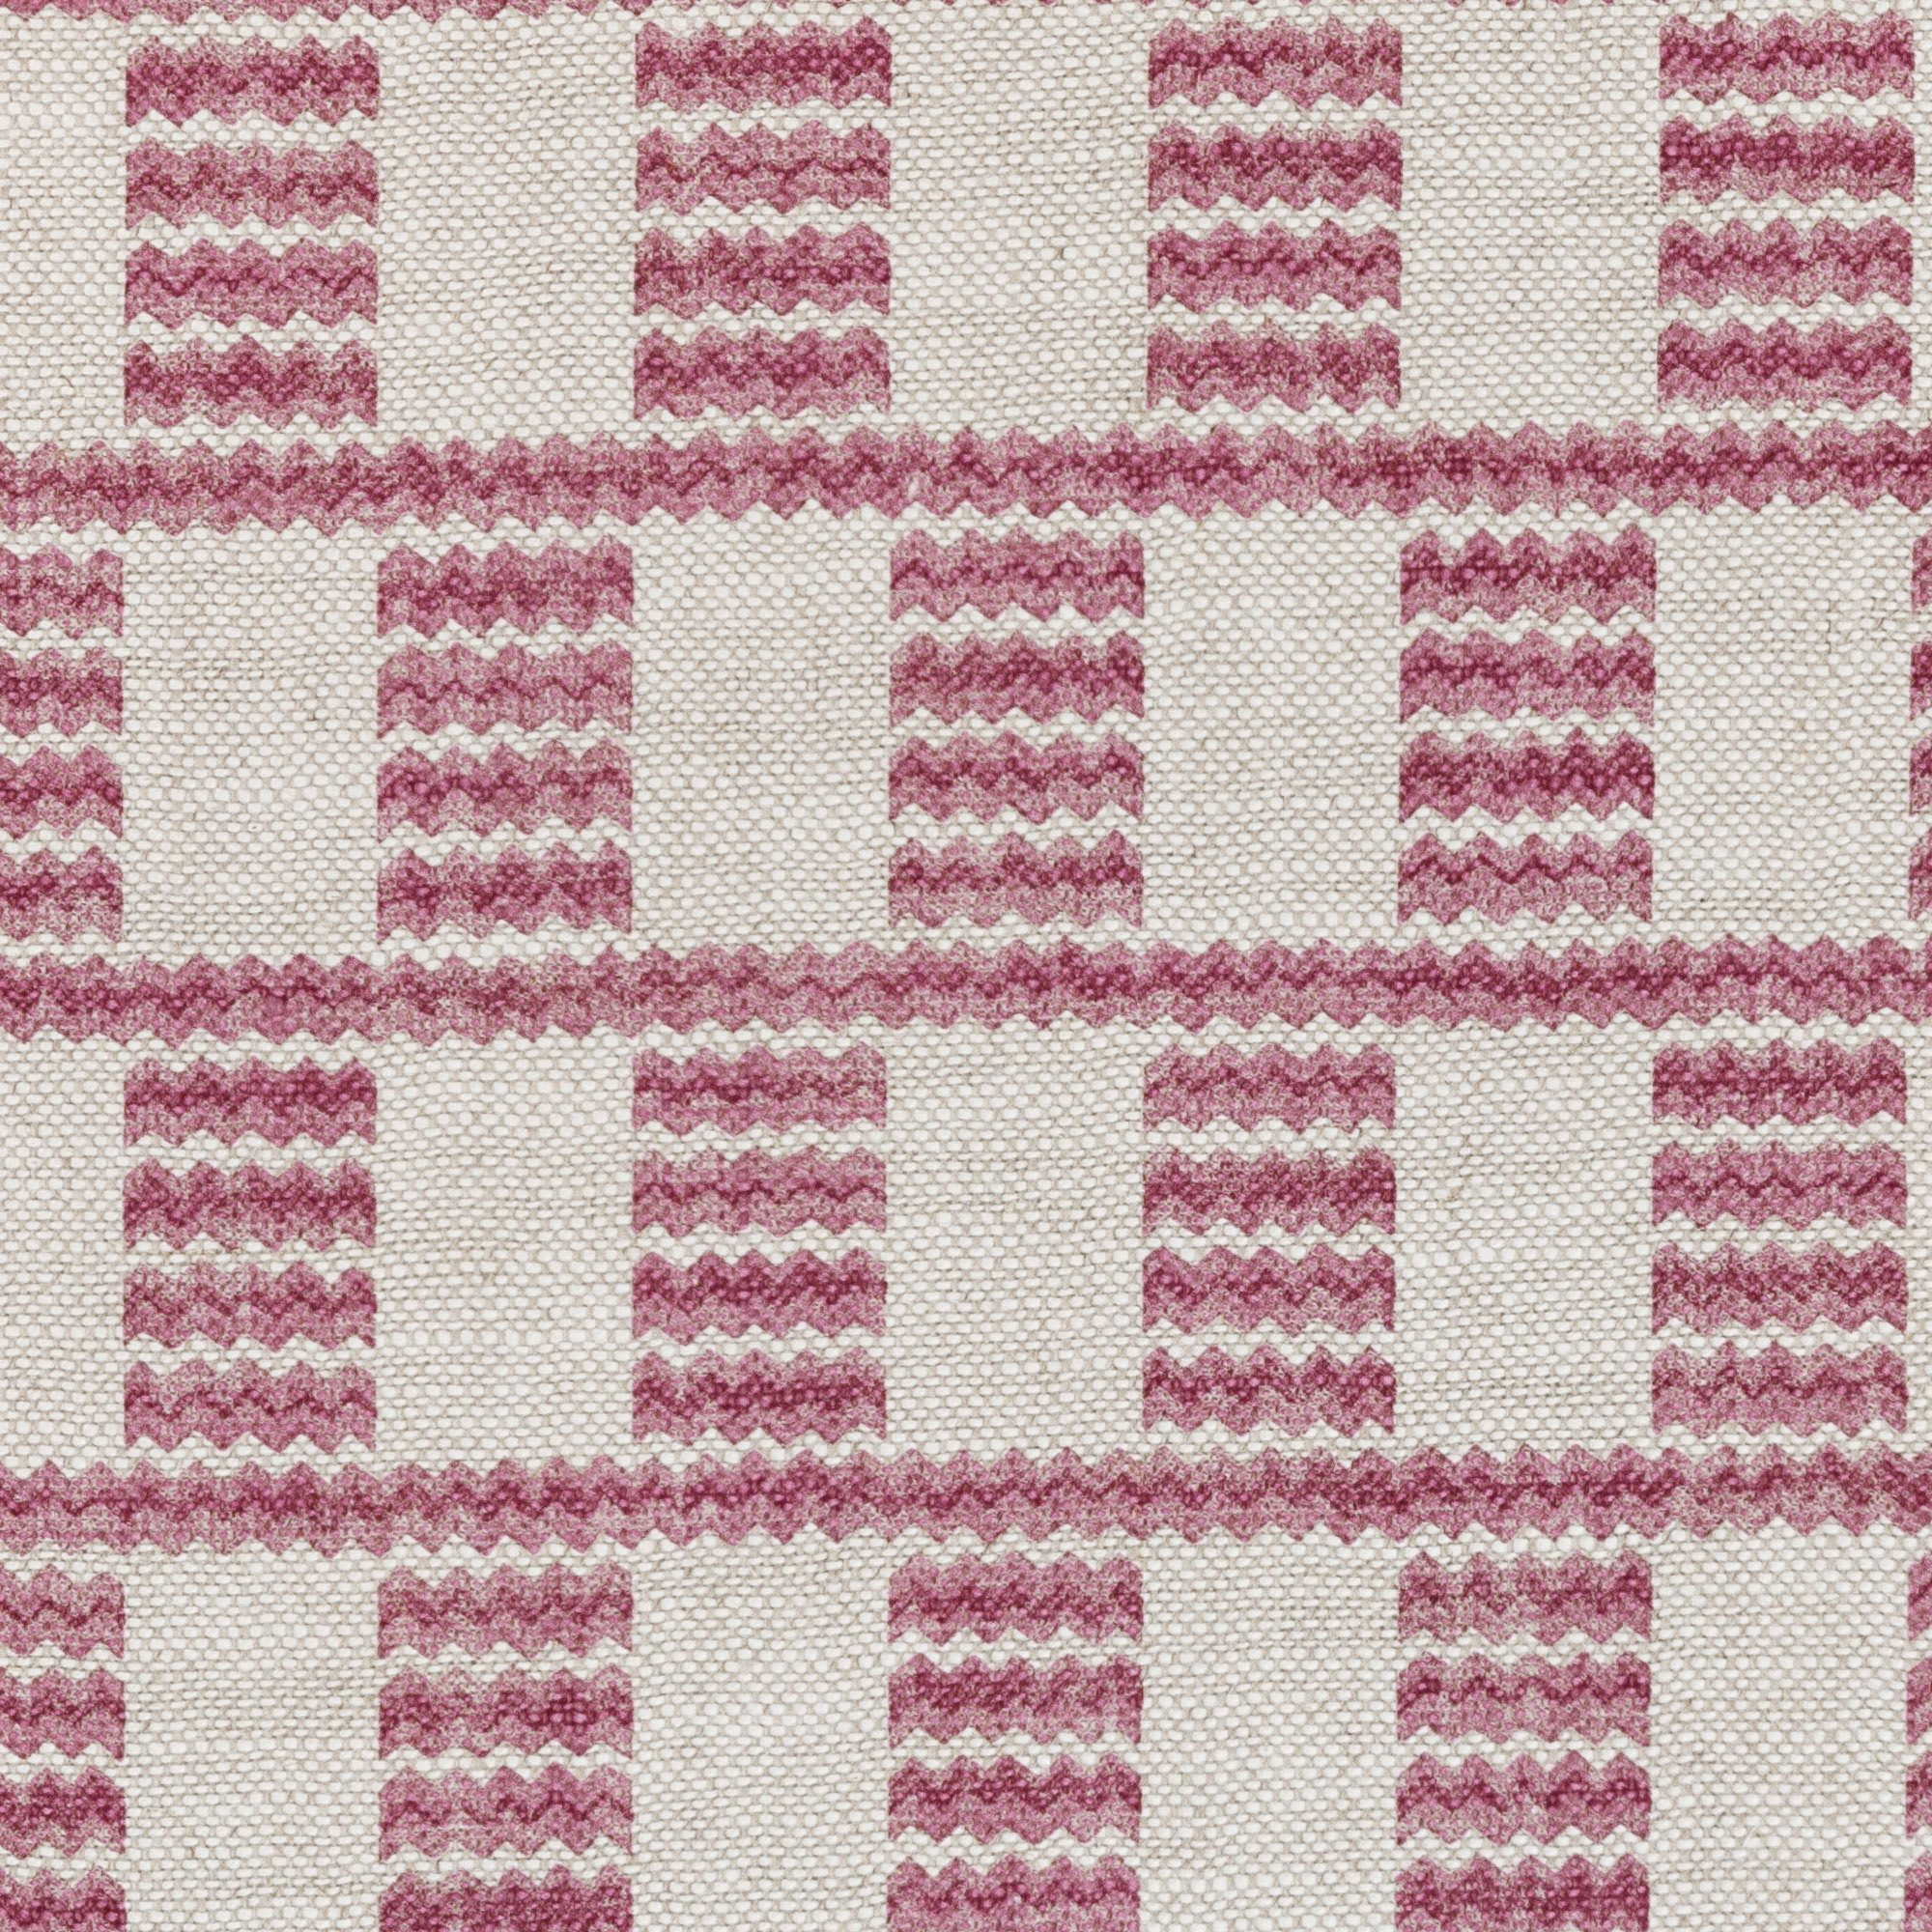 COVE-002-Cool-Pink-Cove-Linen(2)